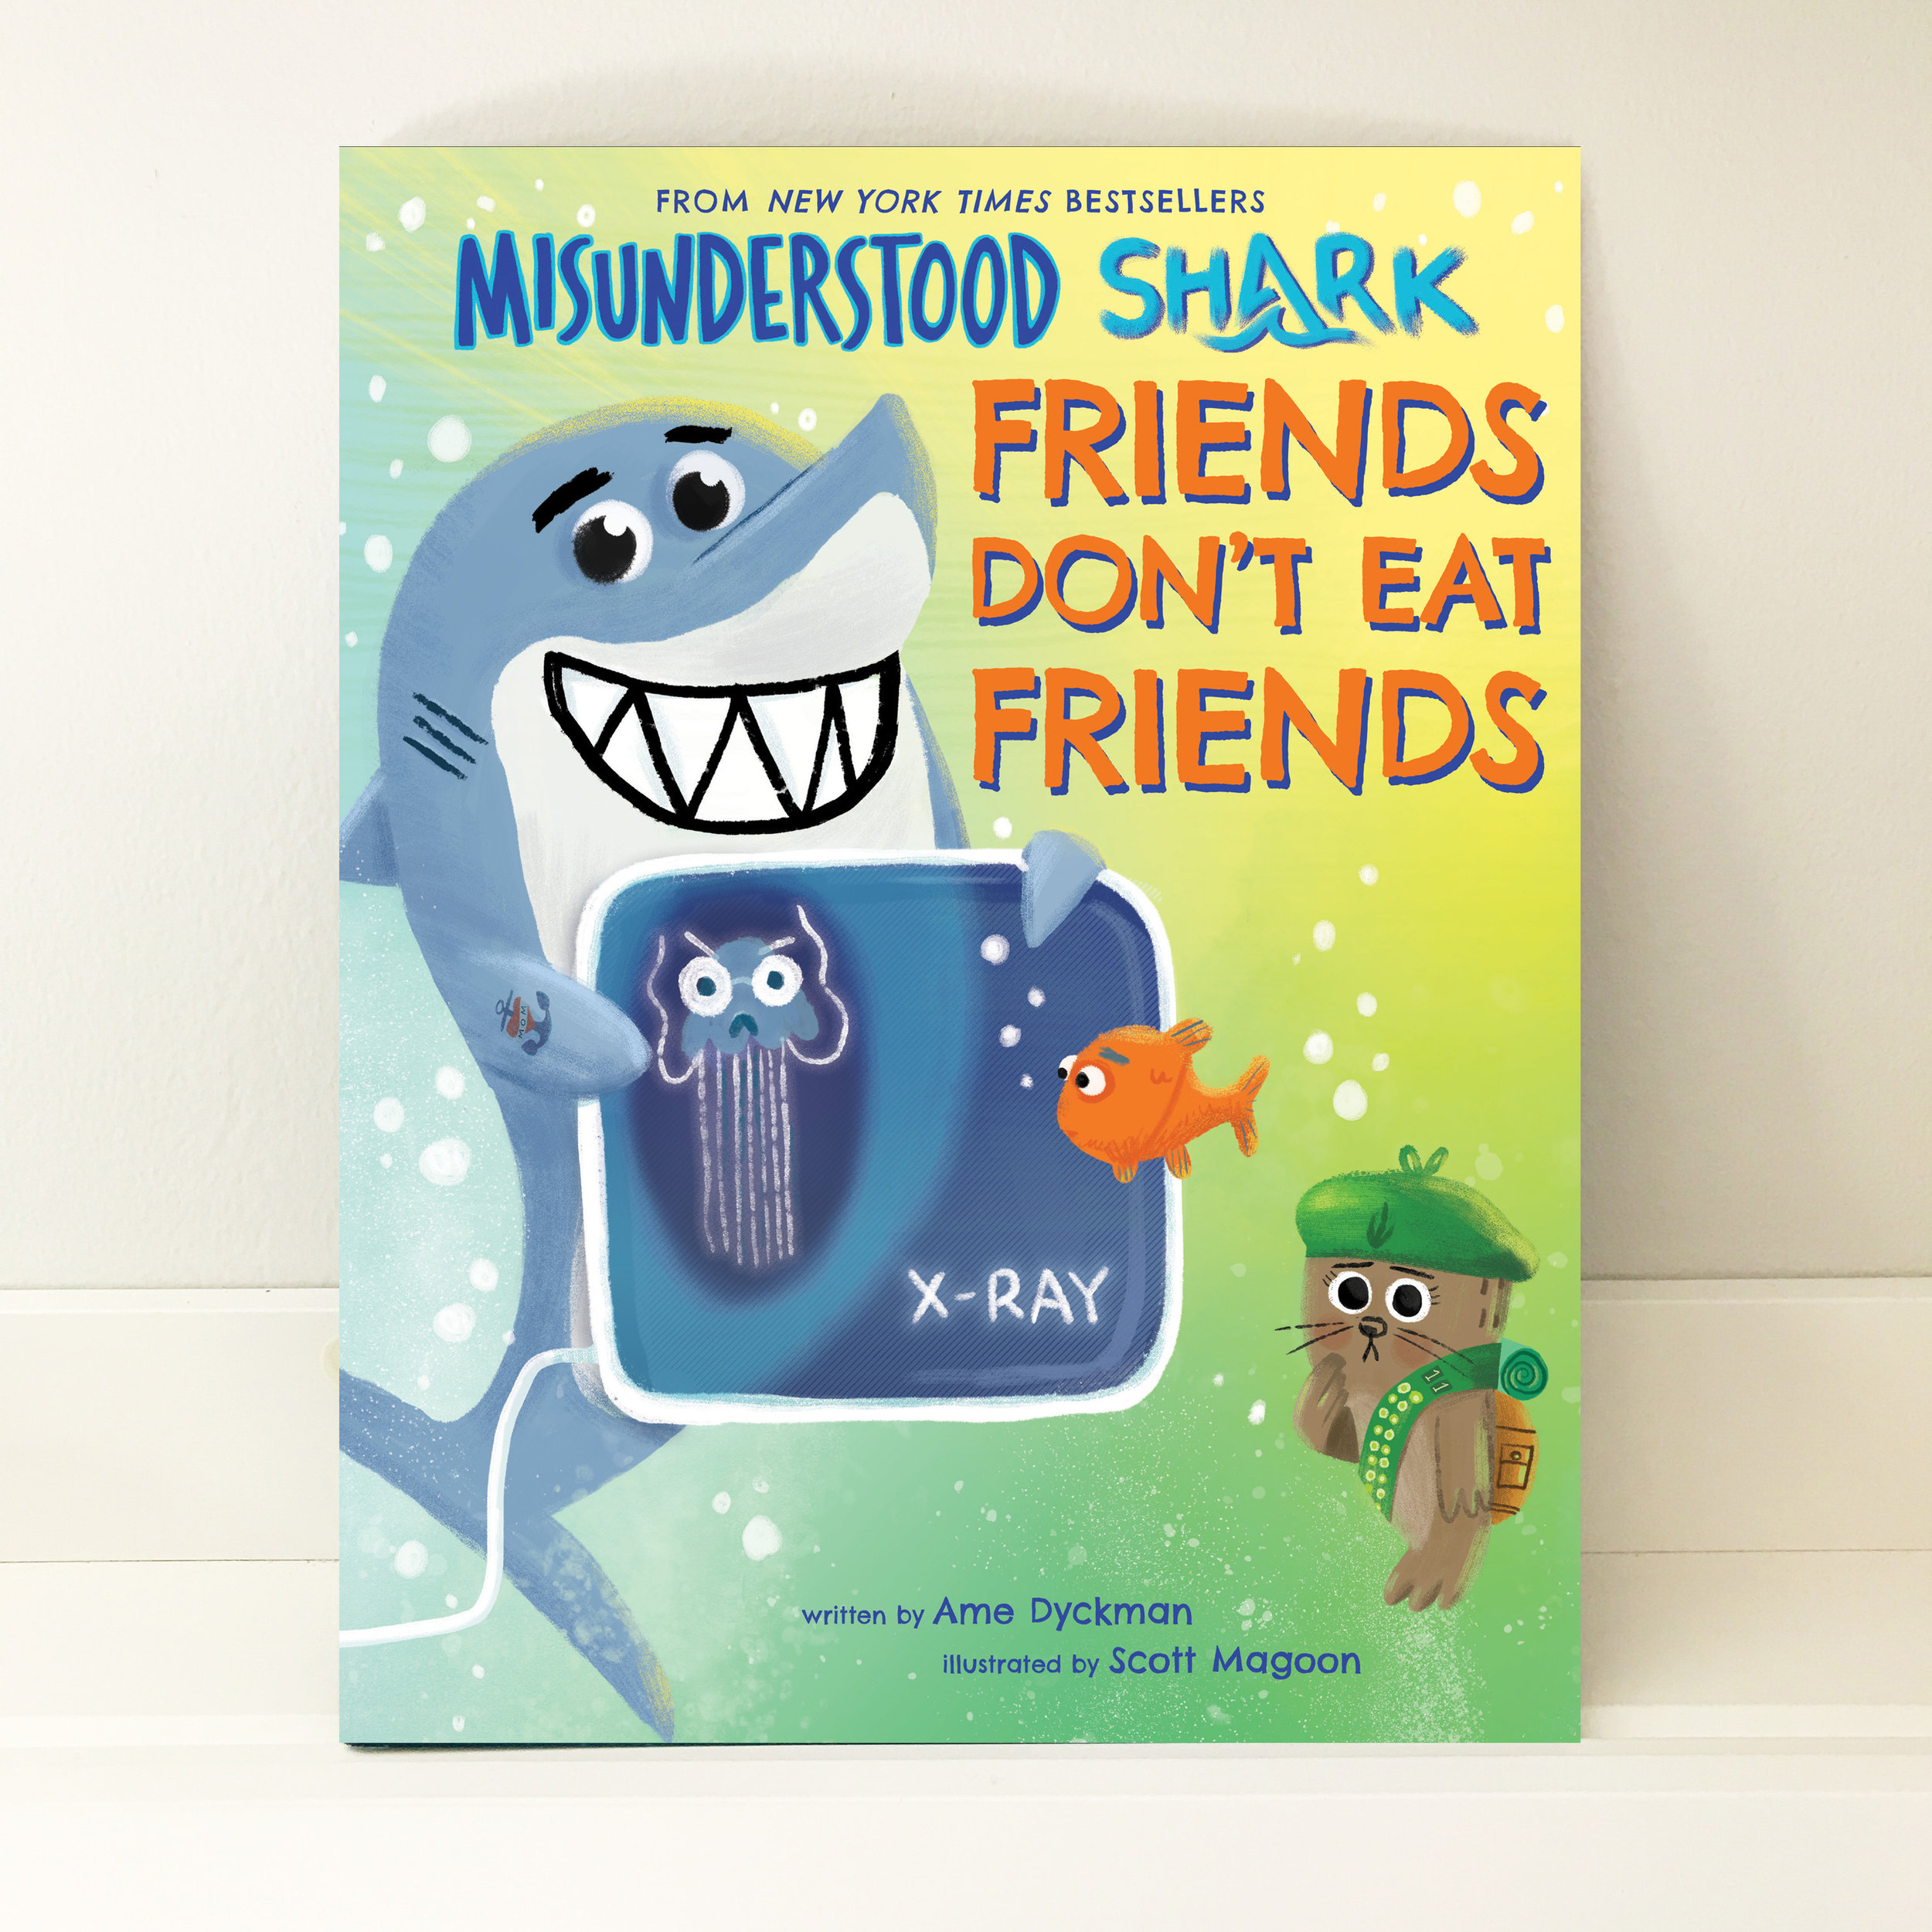 Sea-quel Alert! - If you loved Shark, Bob and the gang then be sure to check out MISUNDERSTOOD SHARK FRIENDS DON'T EAT FRIENDS. Learn more here.